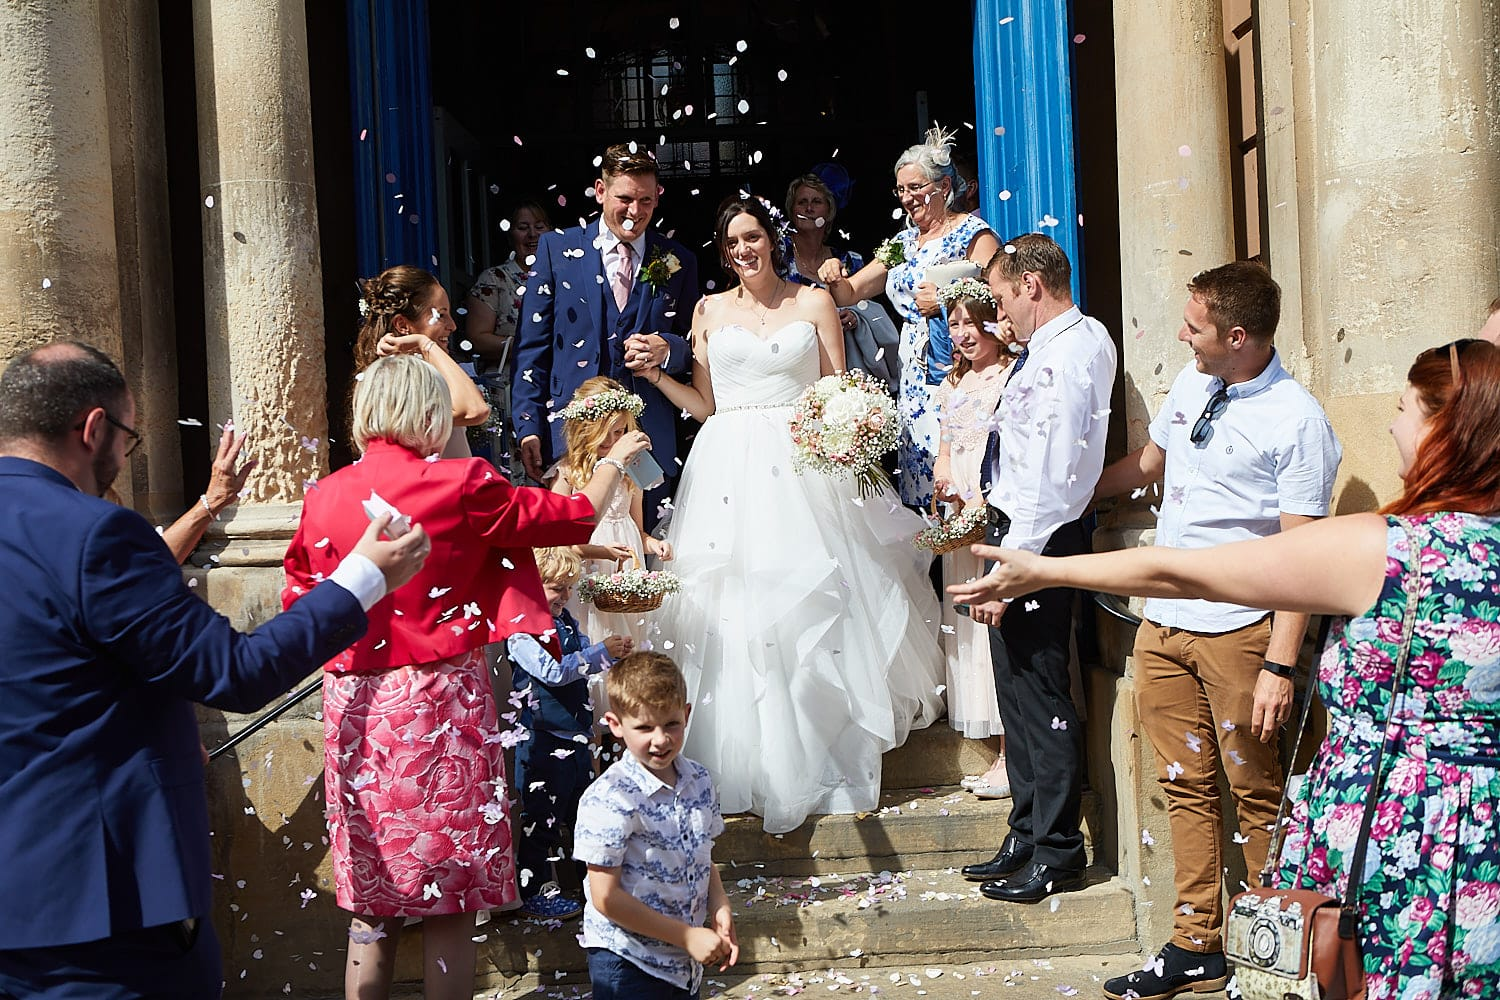 Friends and family throw confetti on the couple after their wedding at Louth Town Hall